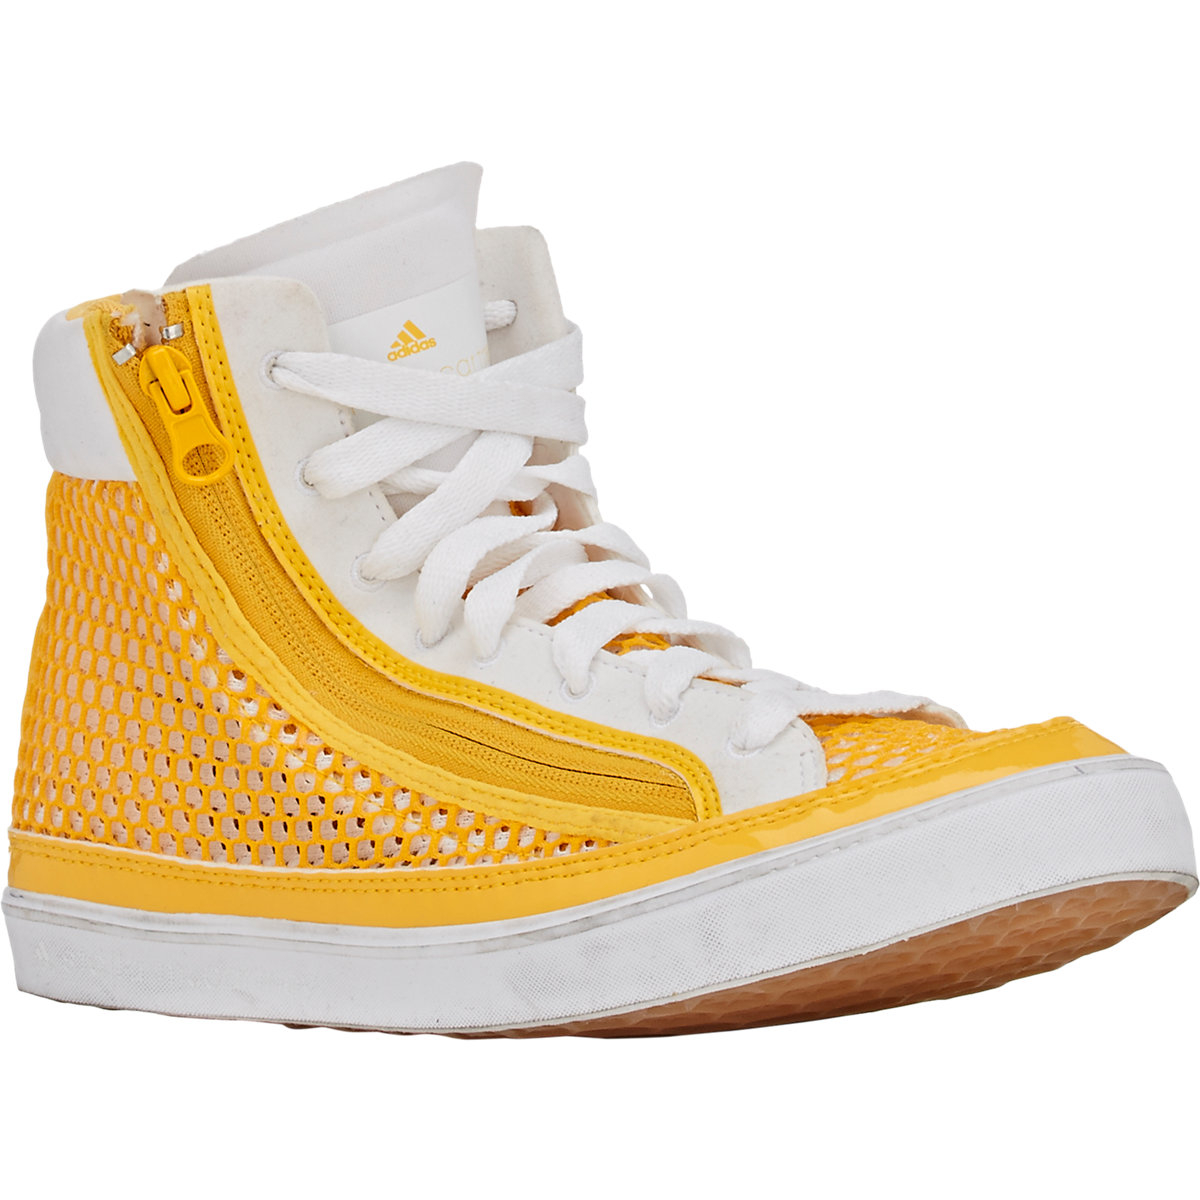 lyst adidas da stella mccartney psittaci sneakers alte in giallo